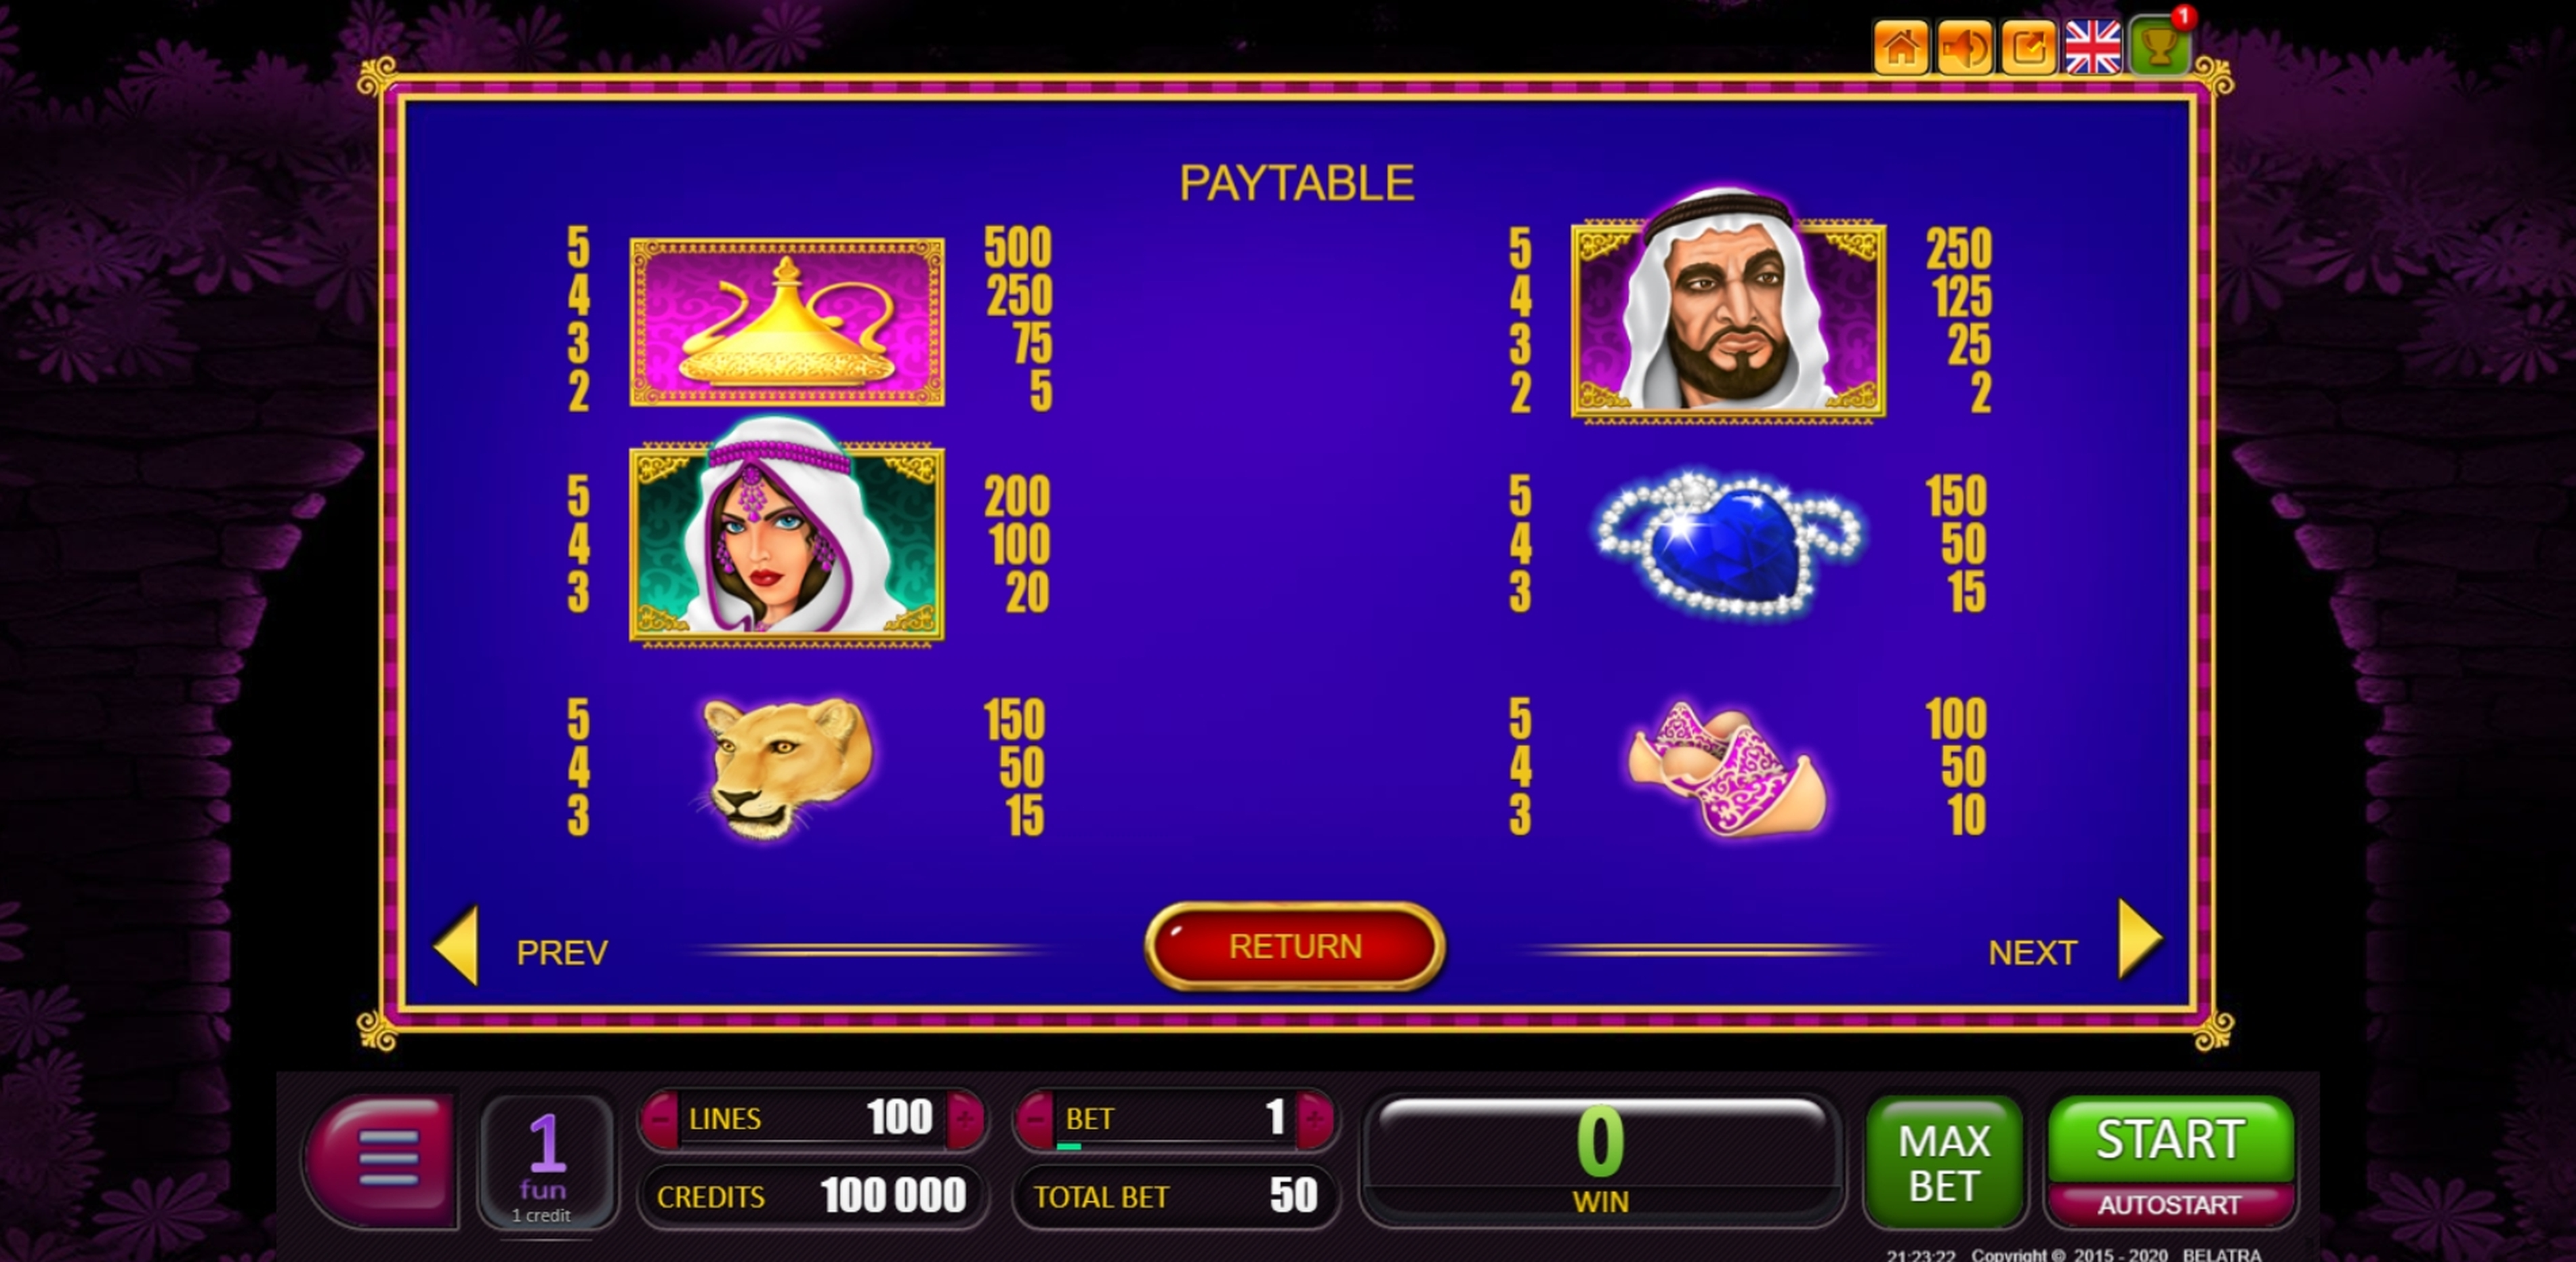 Info of The Moneymania Slot Game by Belatra Games